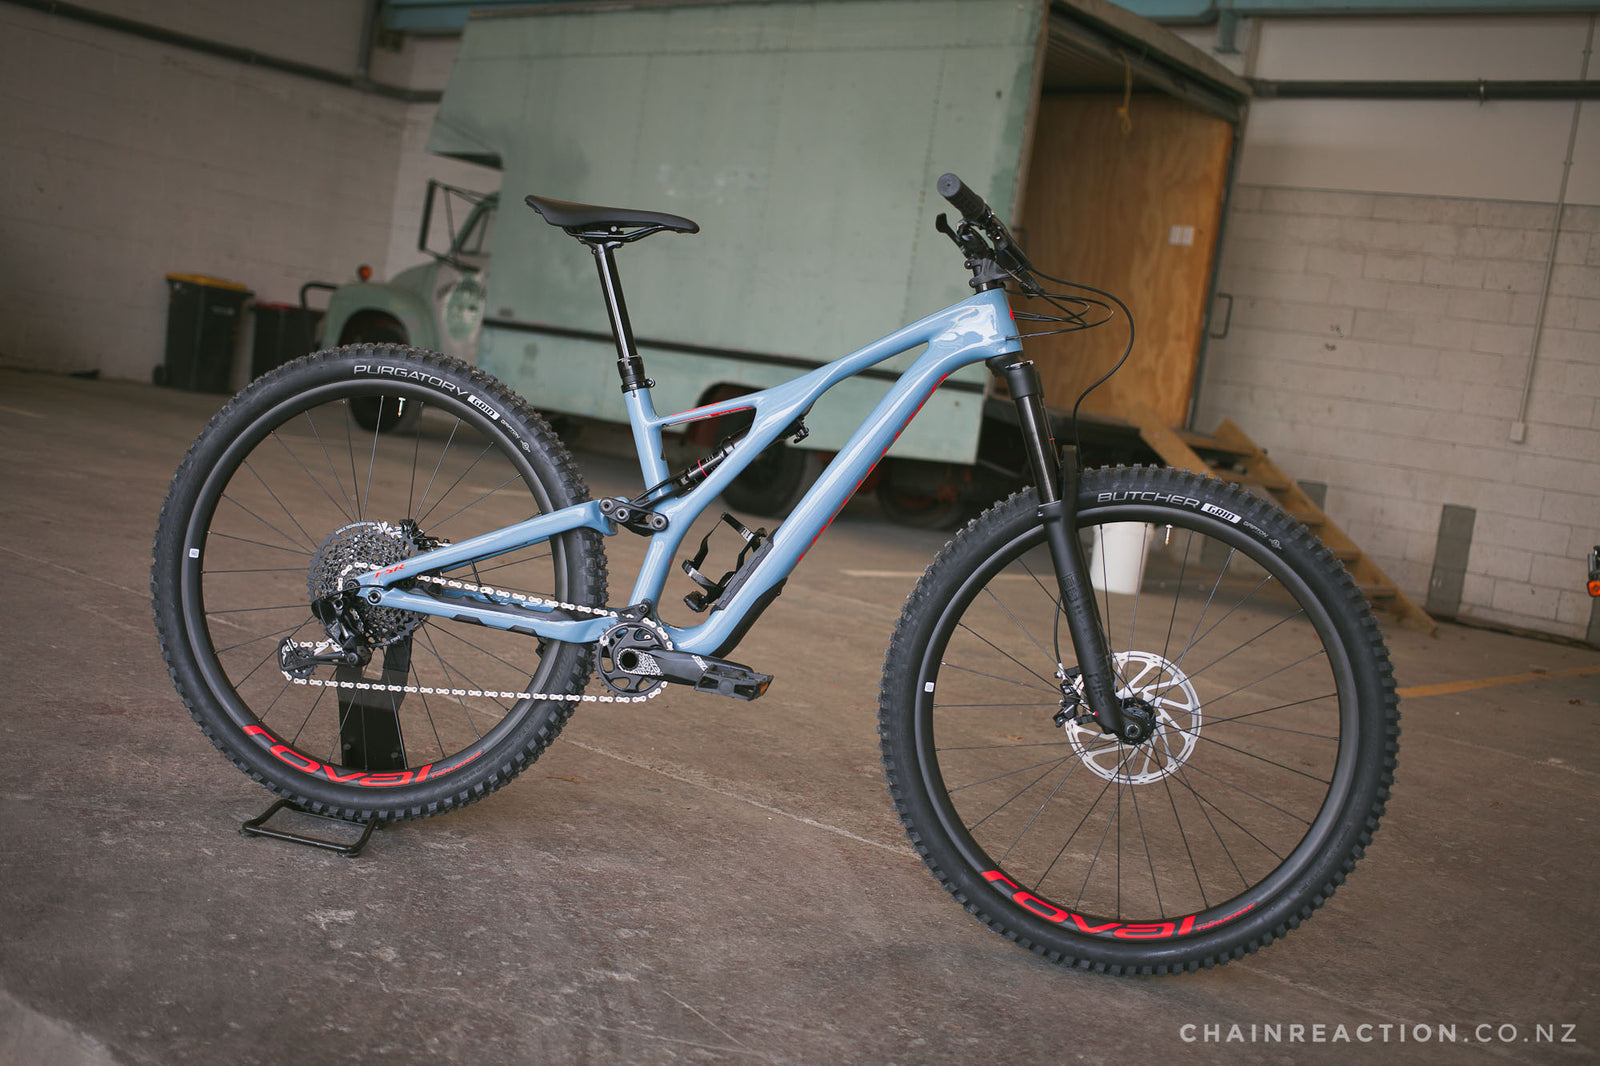 2019 All-New Stumpjumper Expert Carbon 29